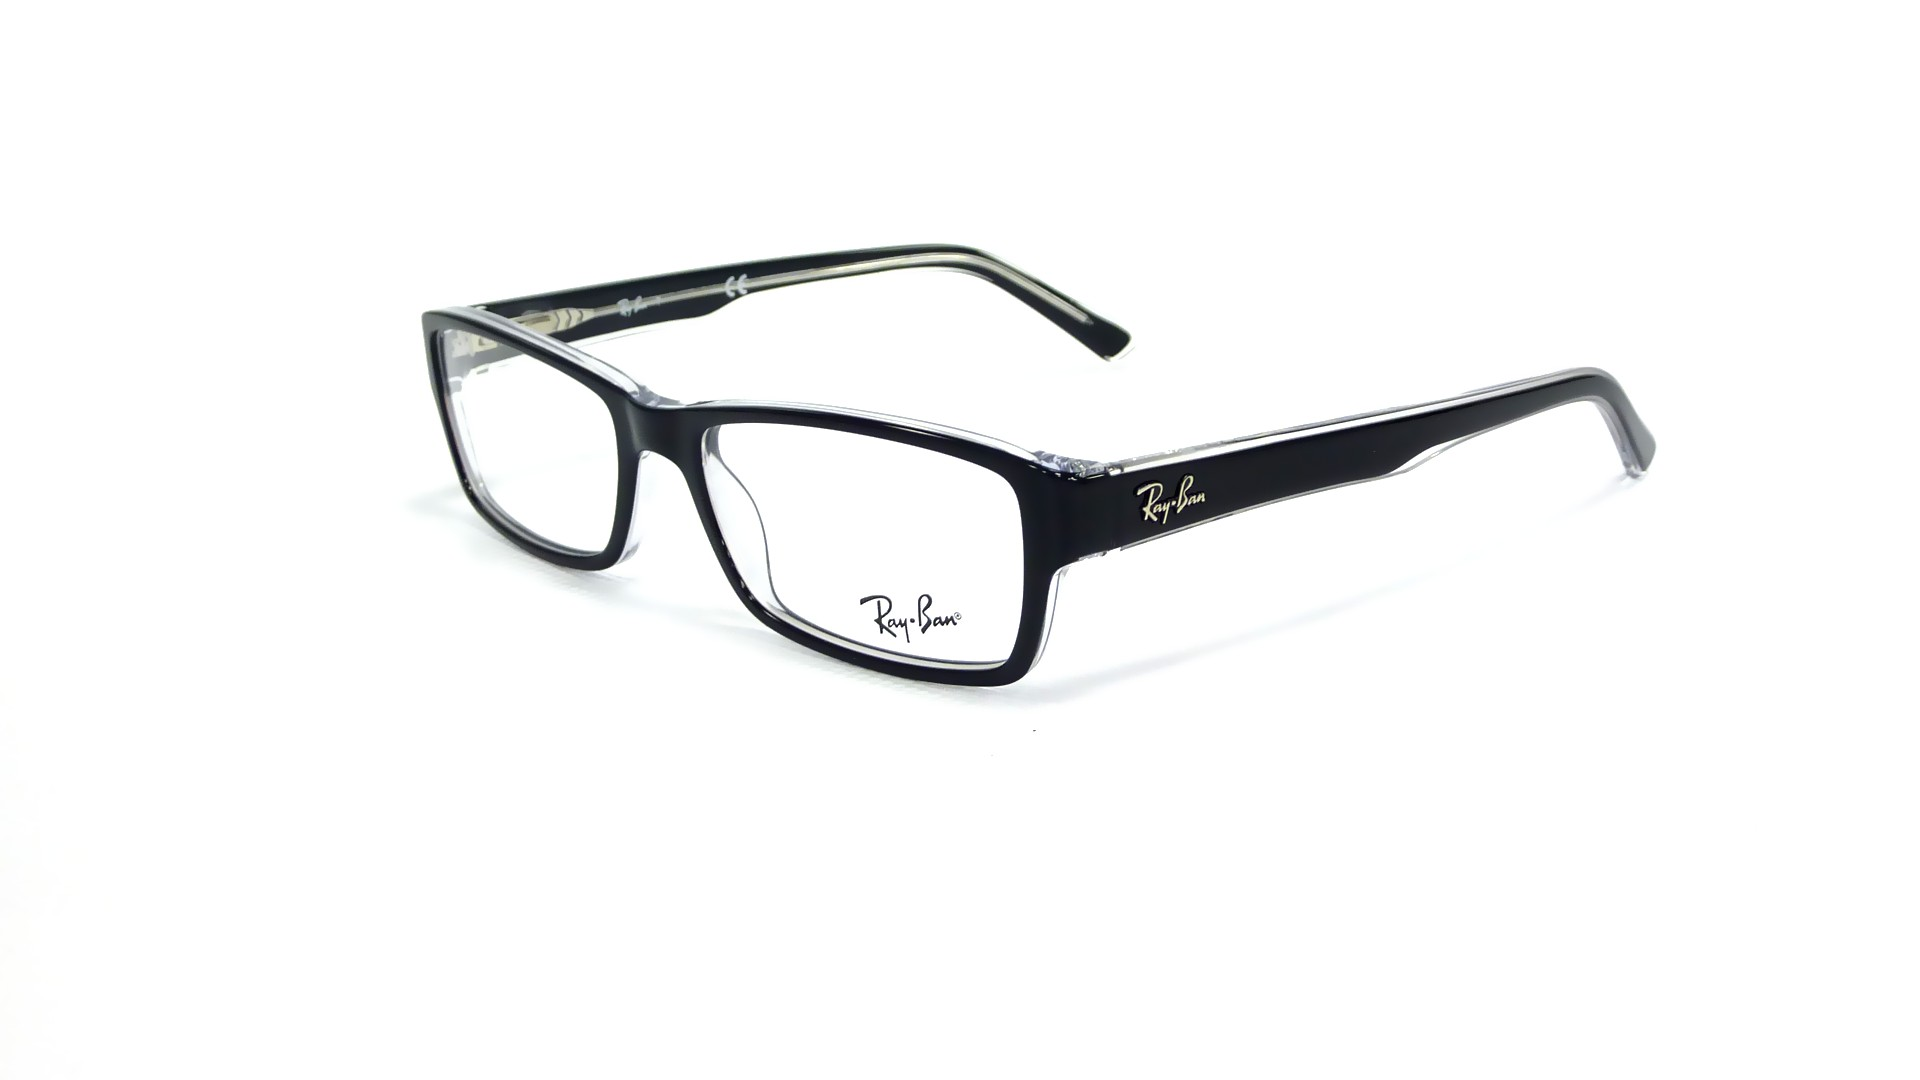 e87ace1db2 Ray Ban Rb5169 2383 « One More Soul